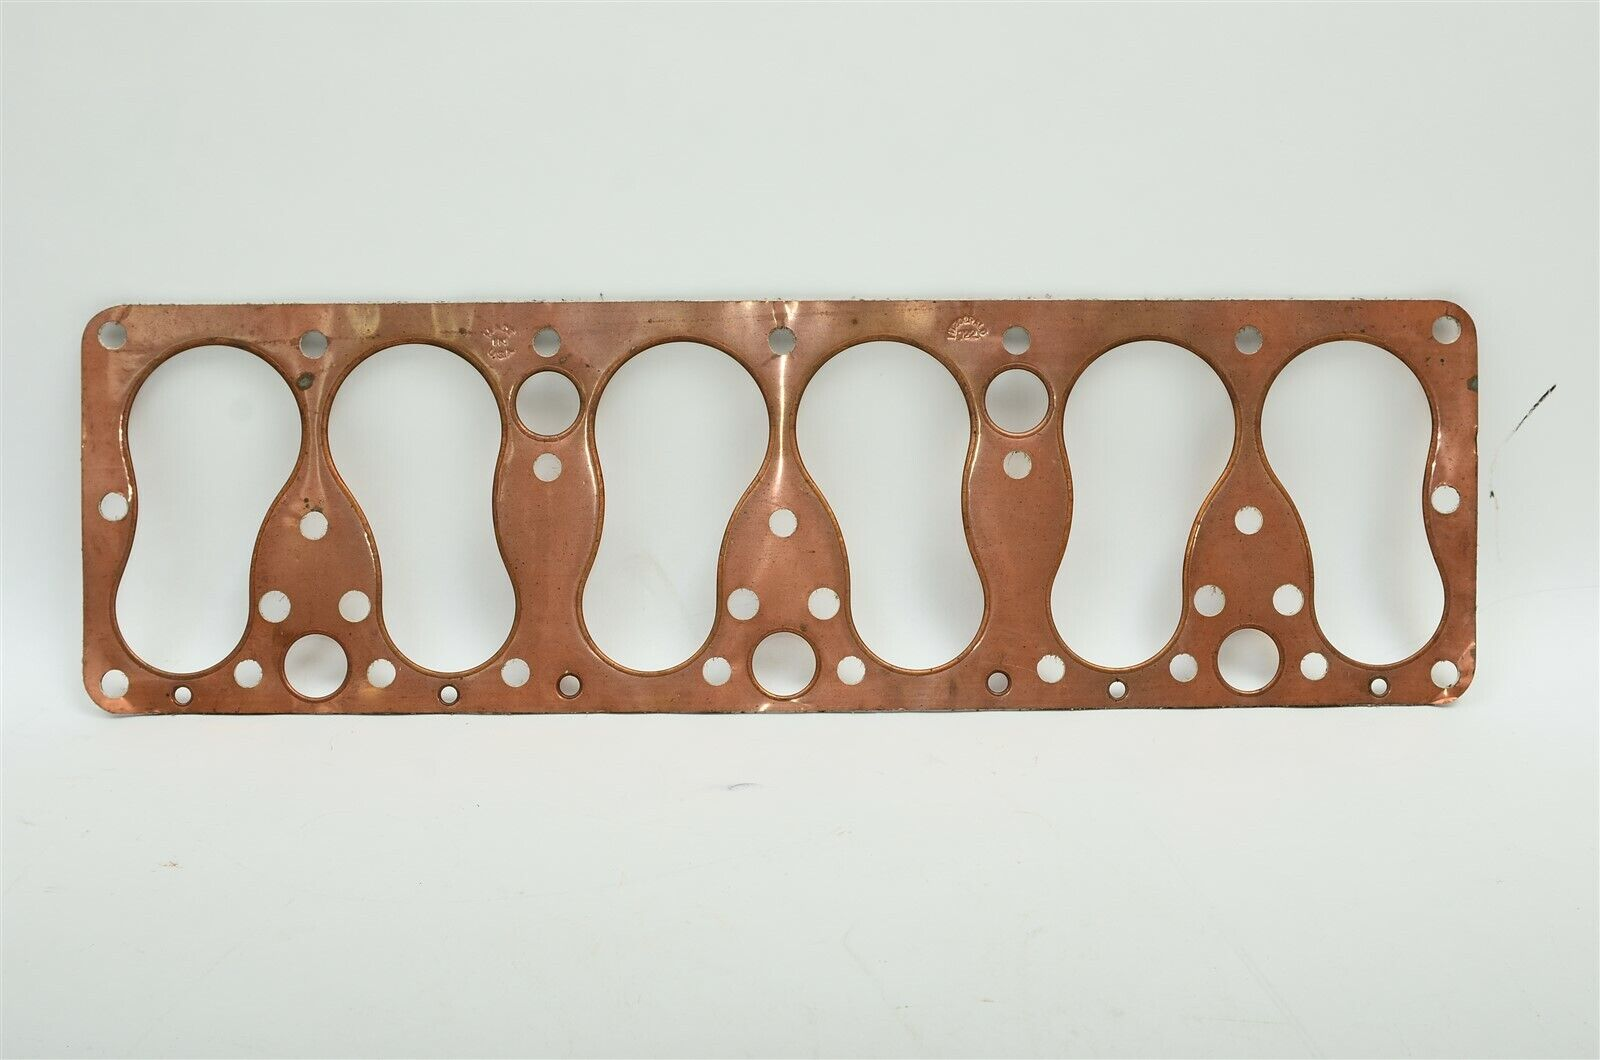 Fits 26-32 REO 6 Speedwagon Truck Cylinder Head Gasket Fitzgerald 722 NORS RARE